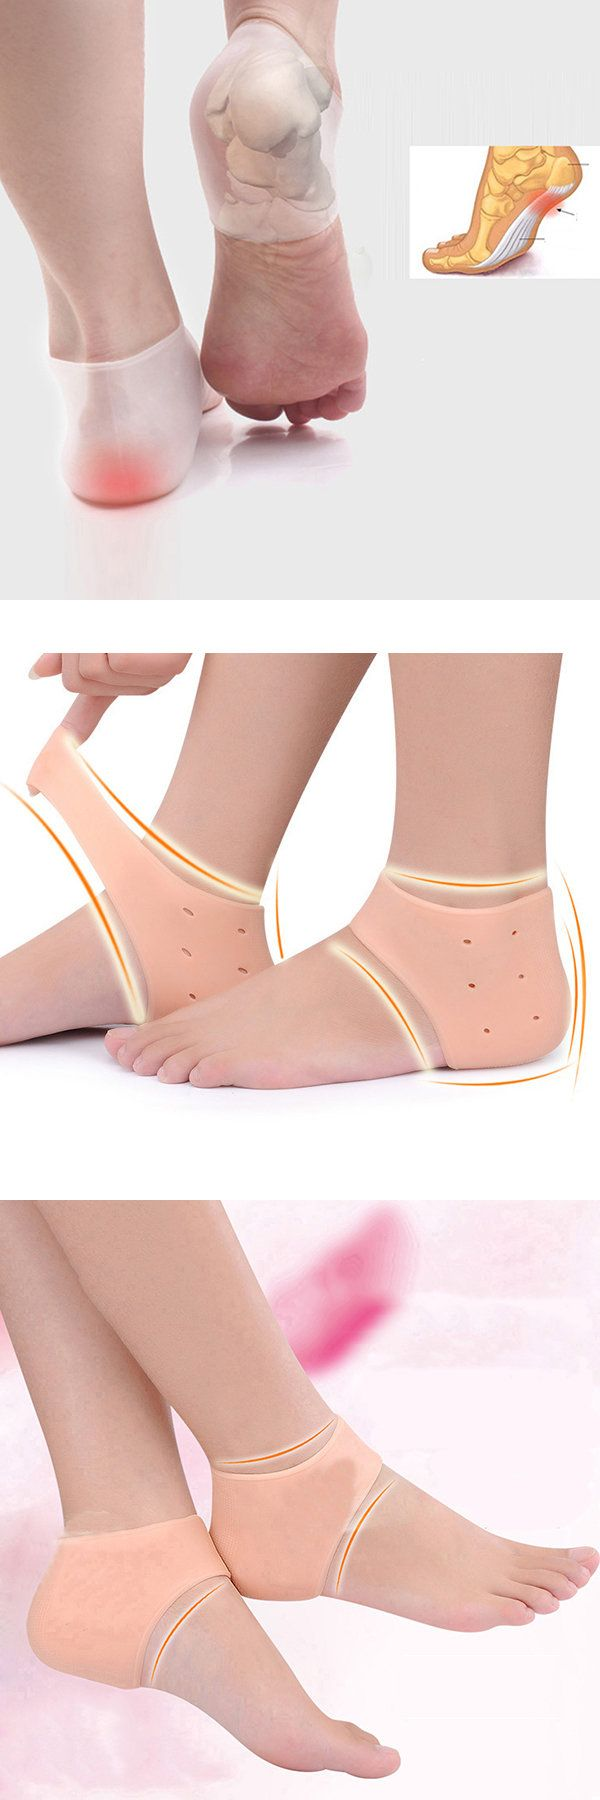 Men Women Silica Gel Heel Protector Good Elastic Breathable Heel Pain Remover Full Foot Care